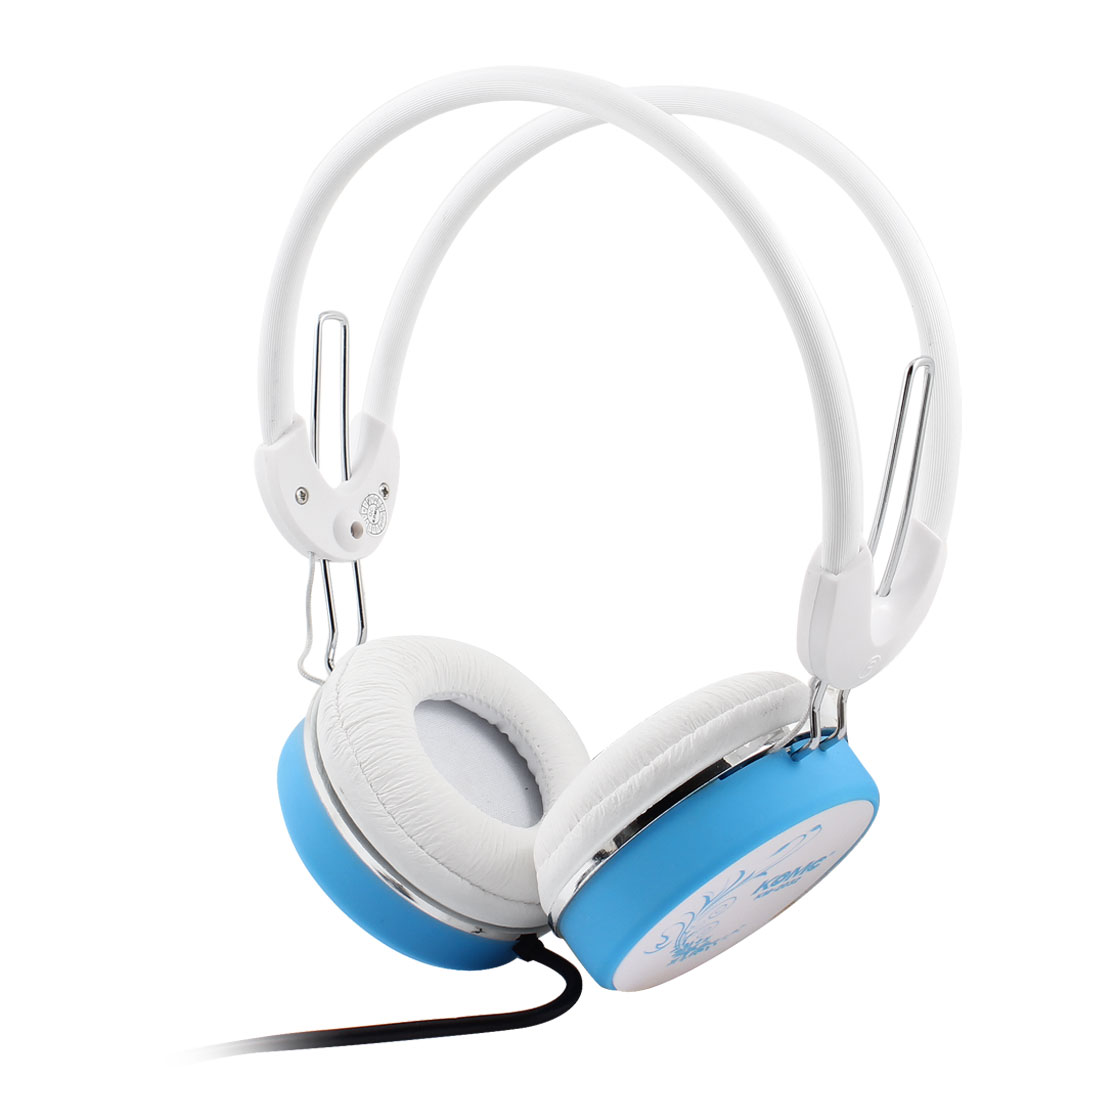 White Sky Blue 3.5mm Stereo Bass Headset Headphone Handsfree w Mic for Laptop PC